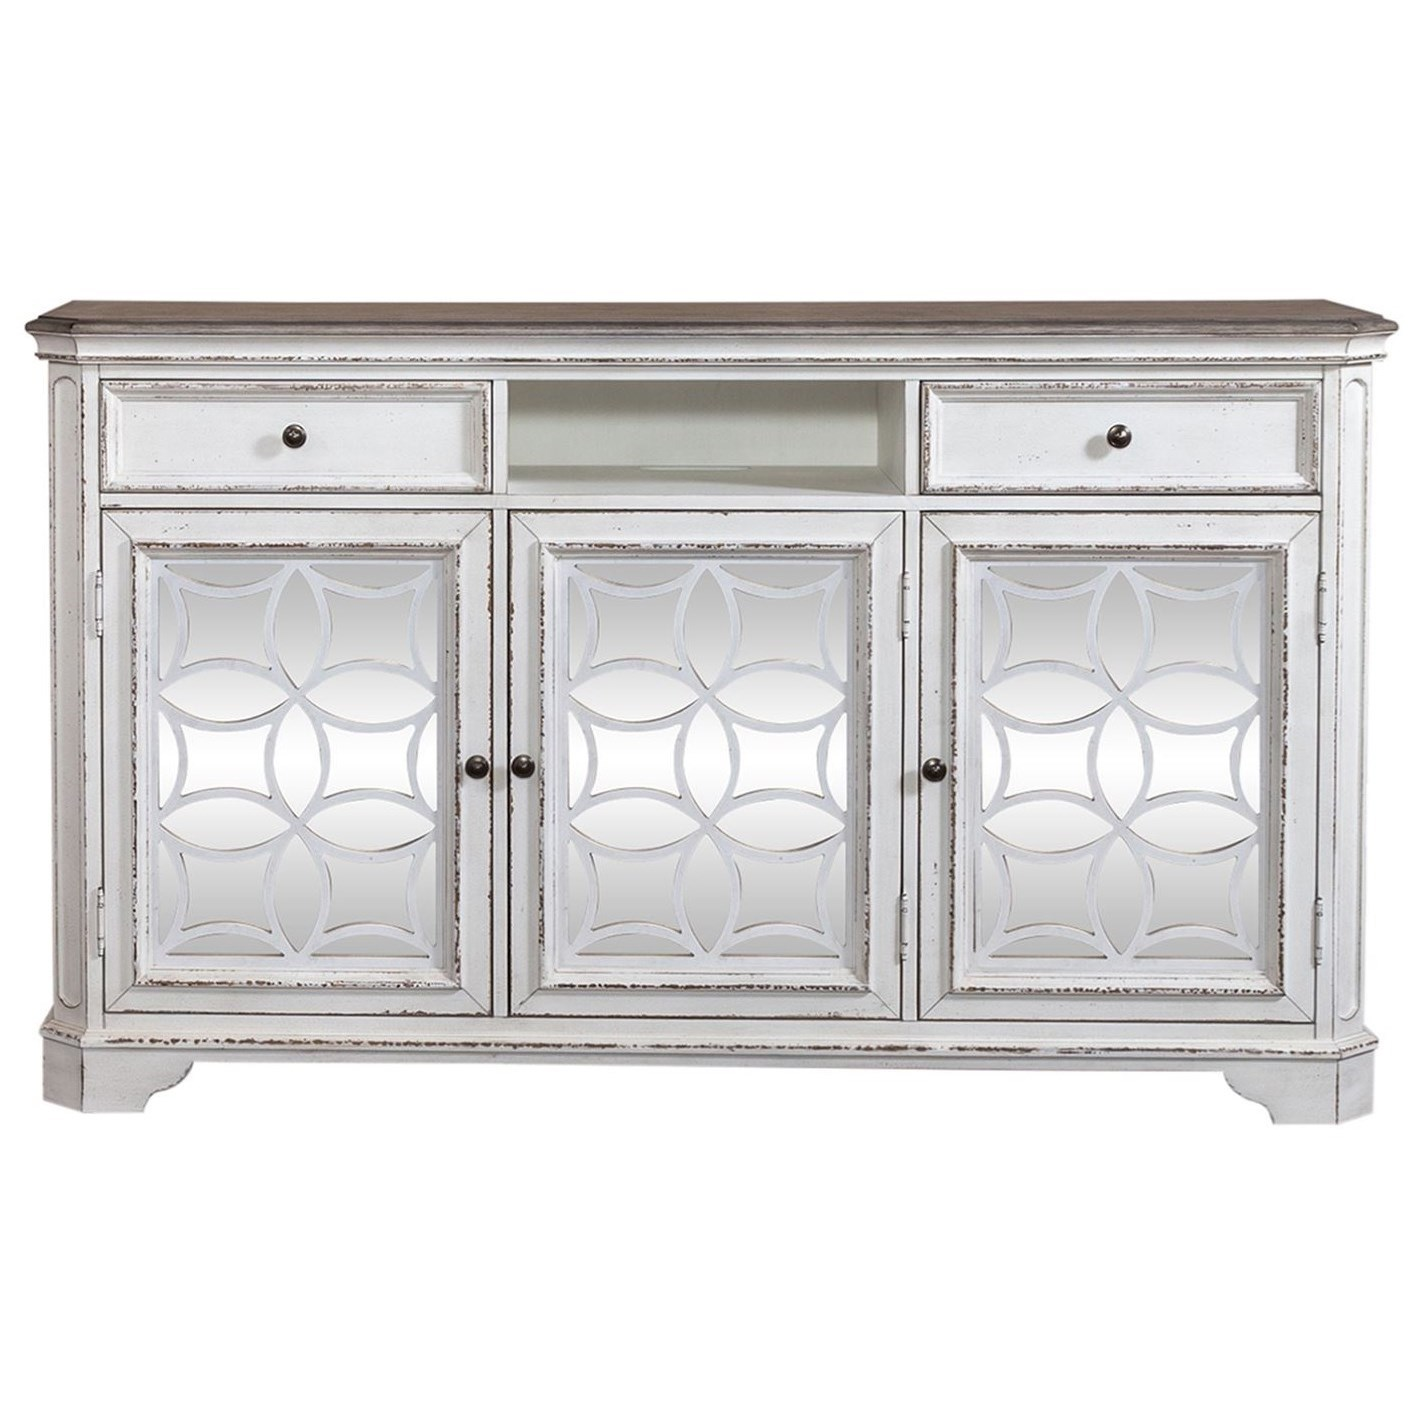 "Magnolia Manor 68"" TV Console by Liberty Furniture at Bullard Furniture"